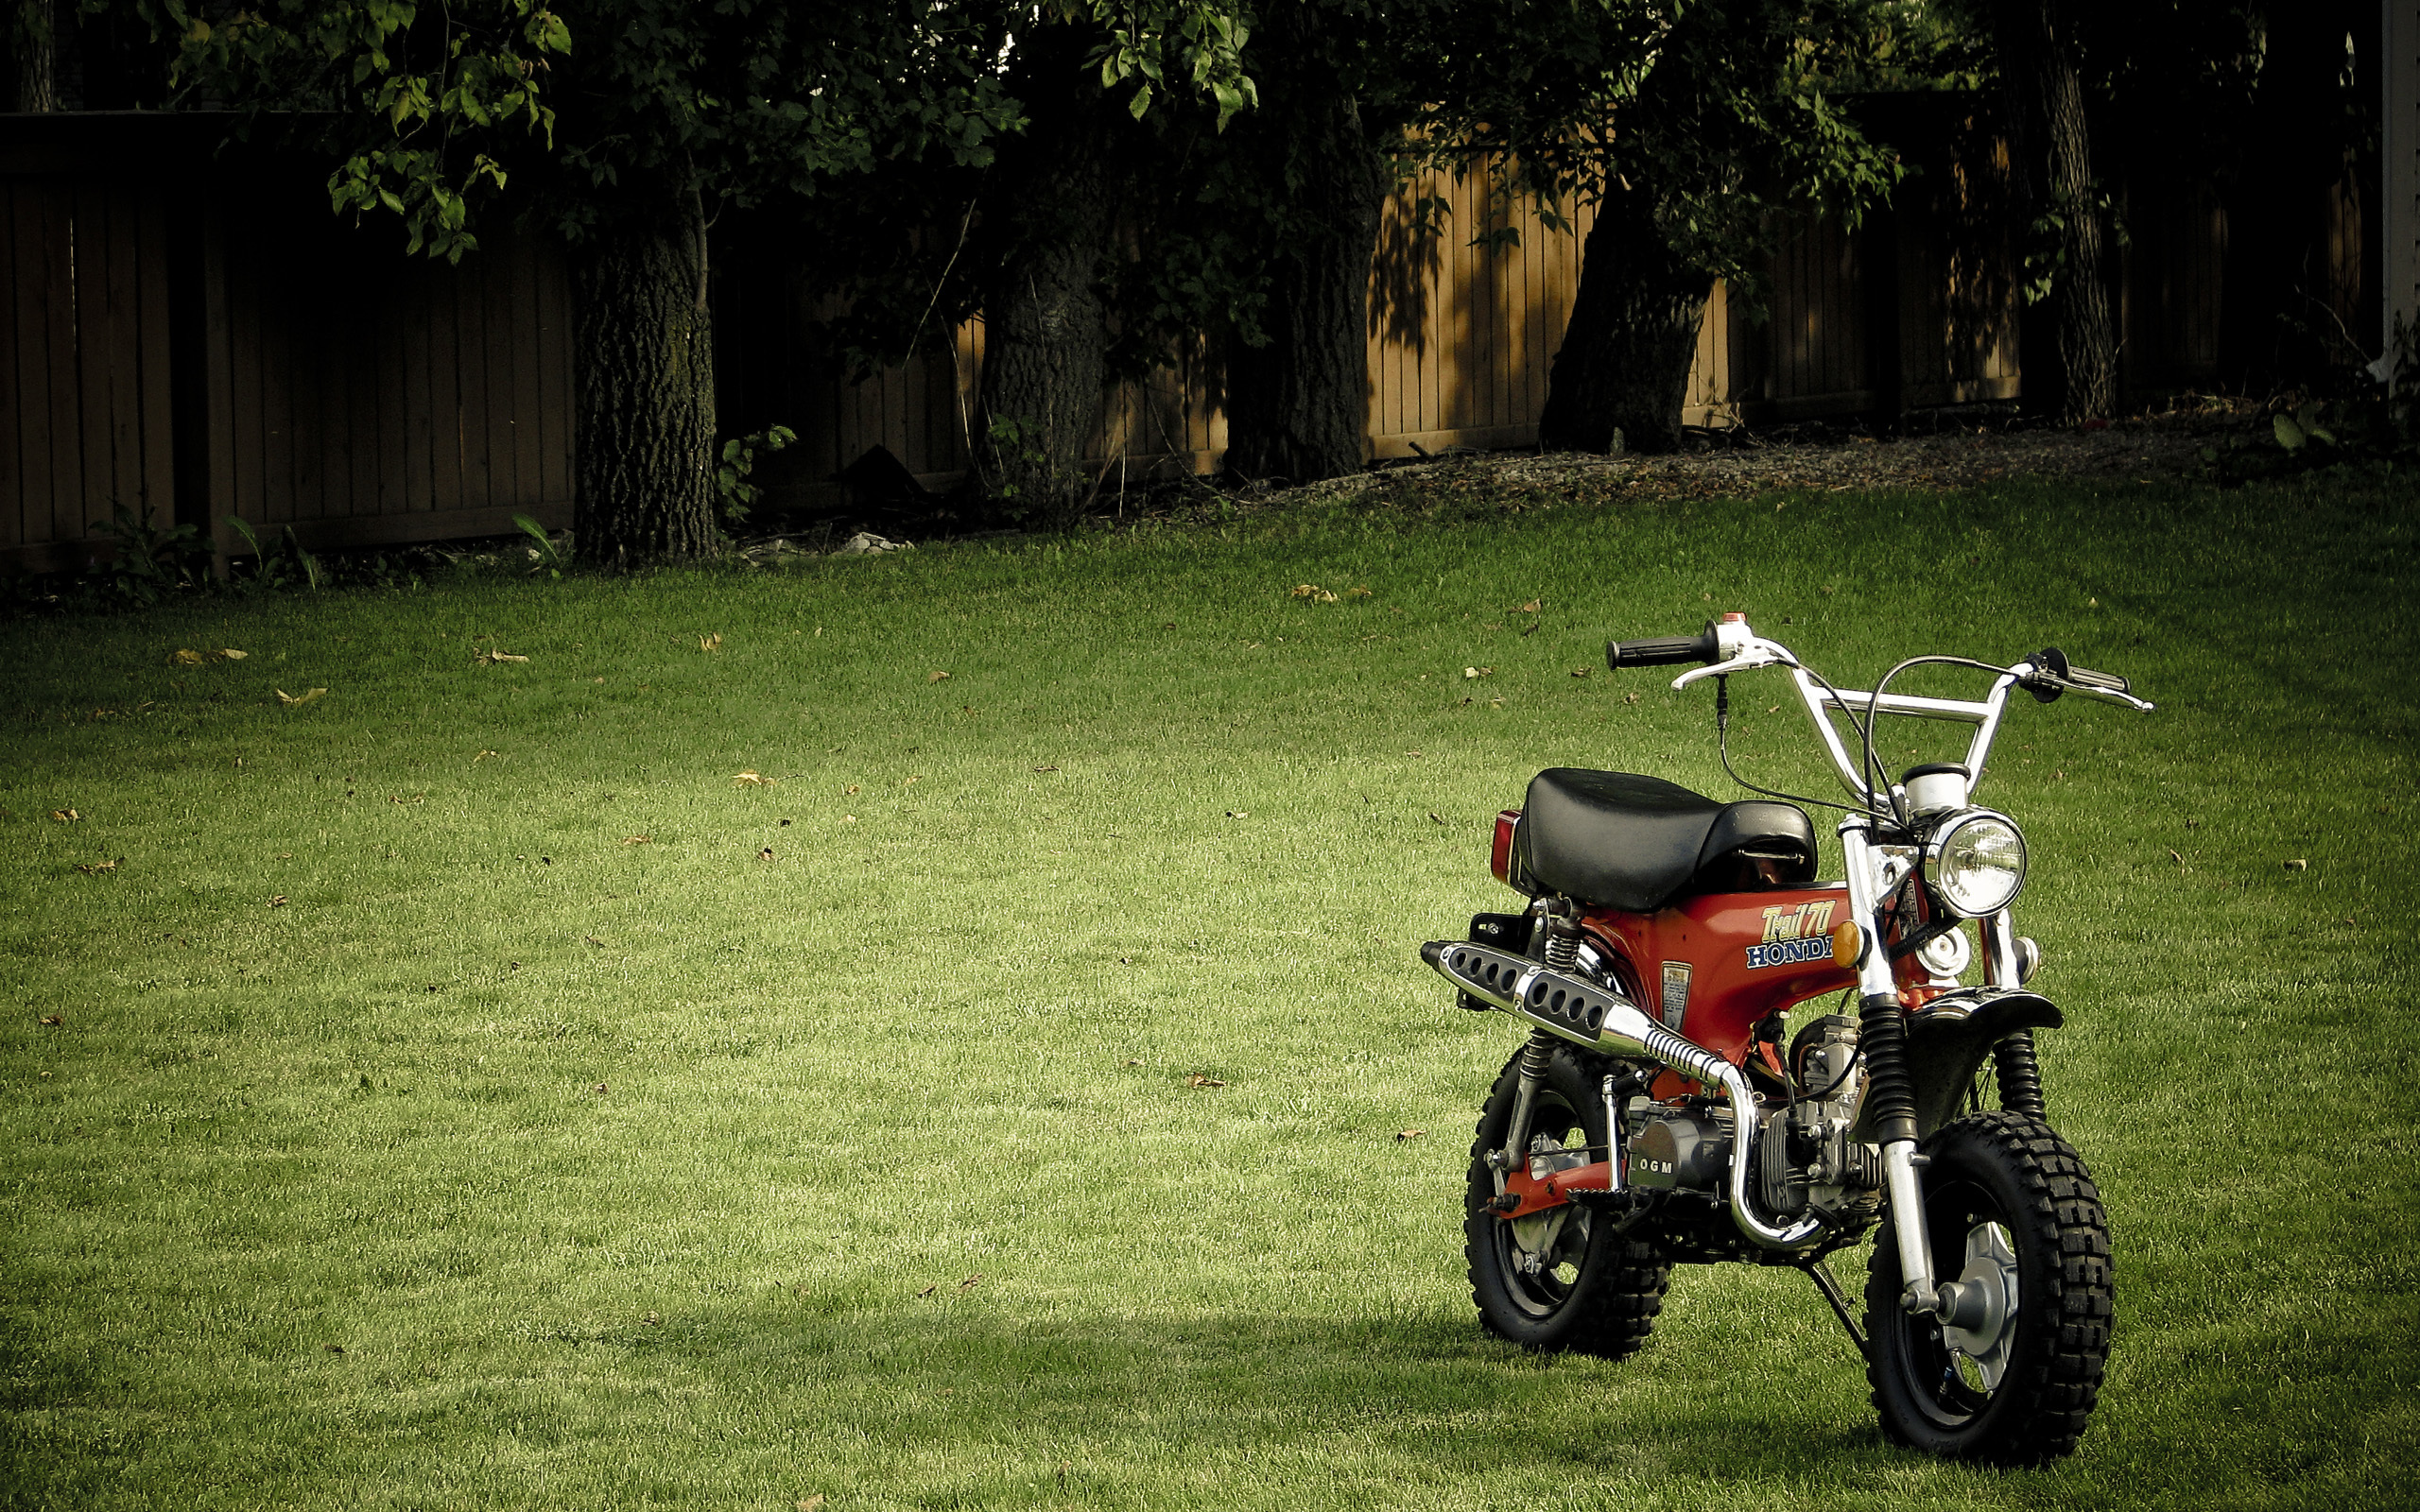 grass Scooters lawn motorbikes HD Wallpaper